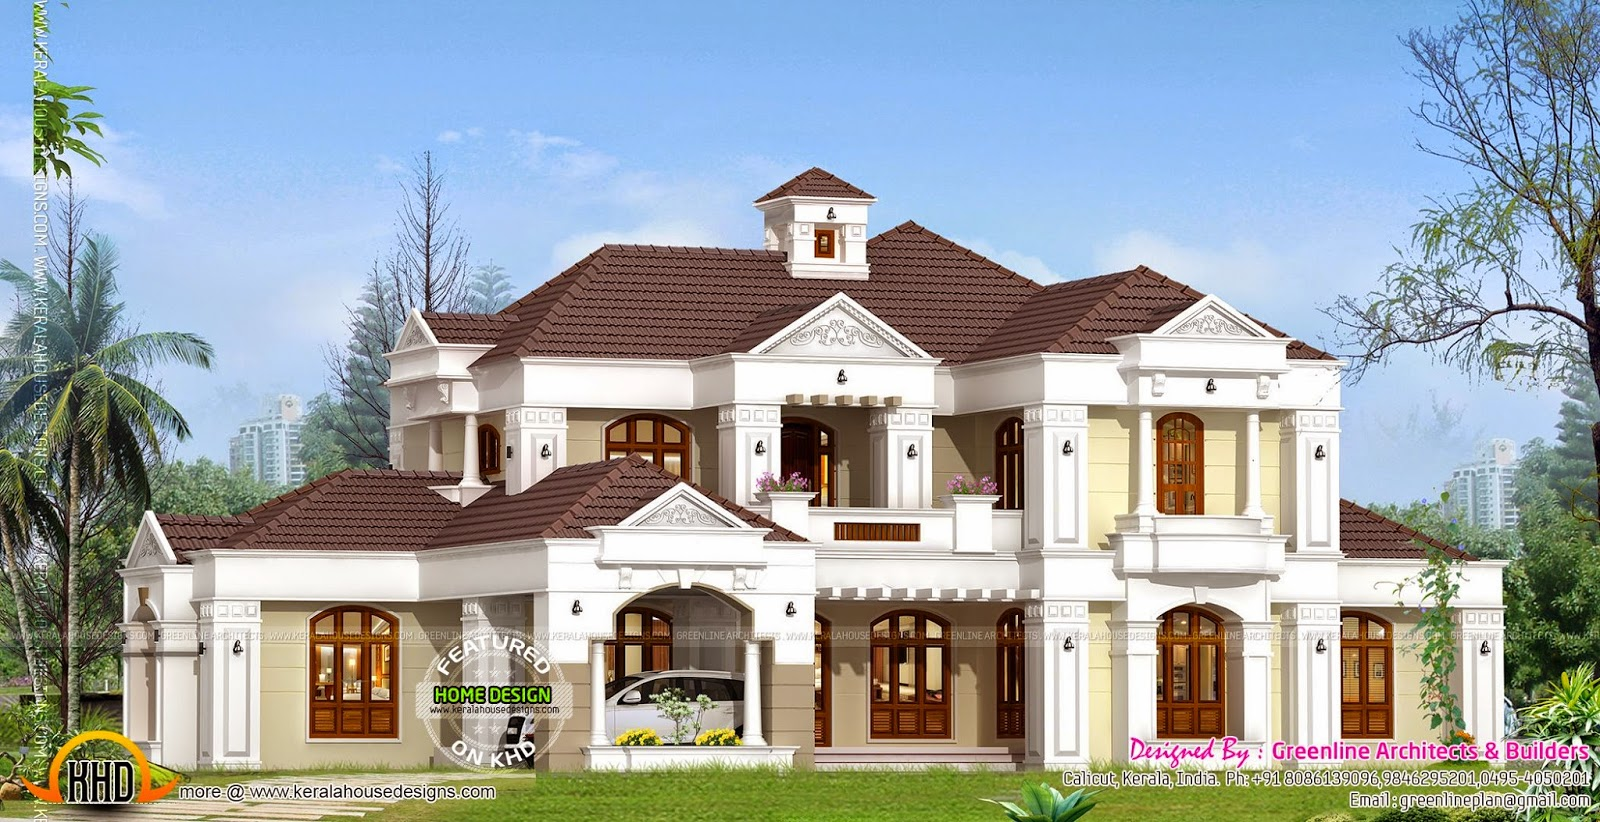 Luxury villa exterior kerala home design and floor plans for Colonial style home design in kerala